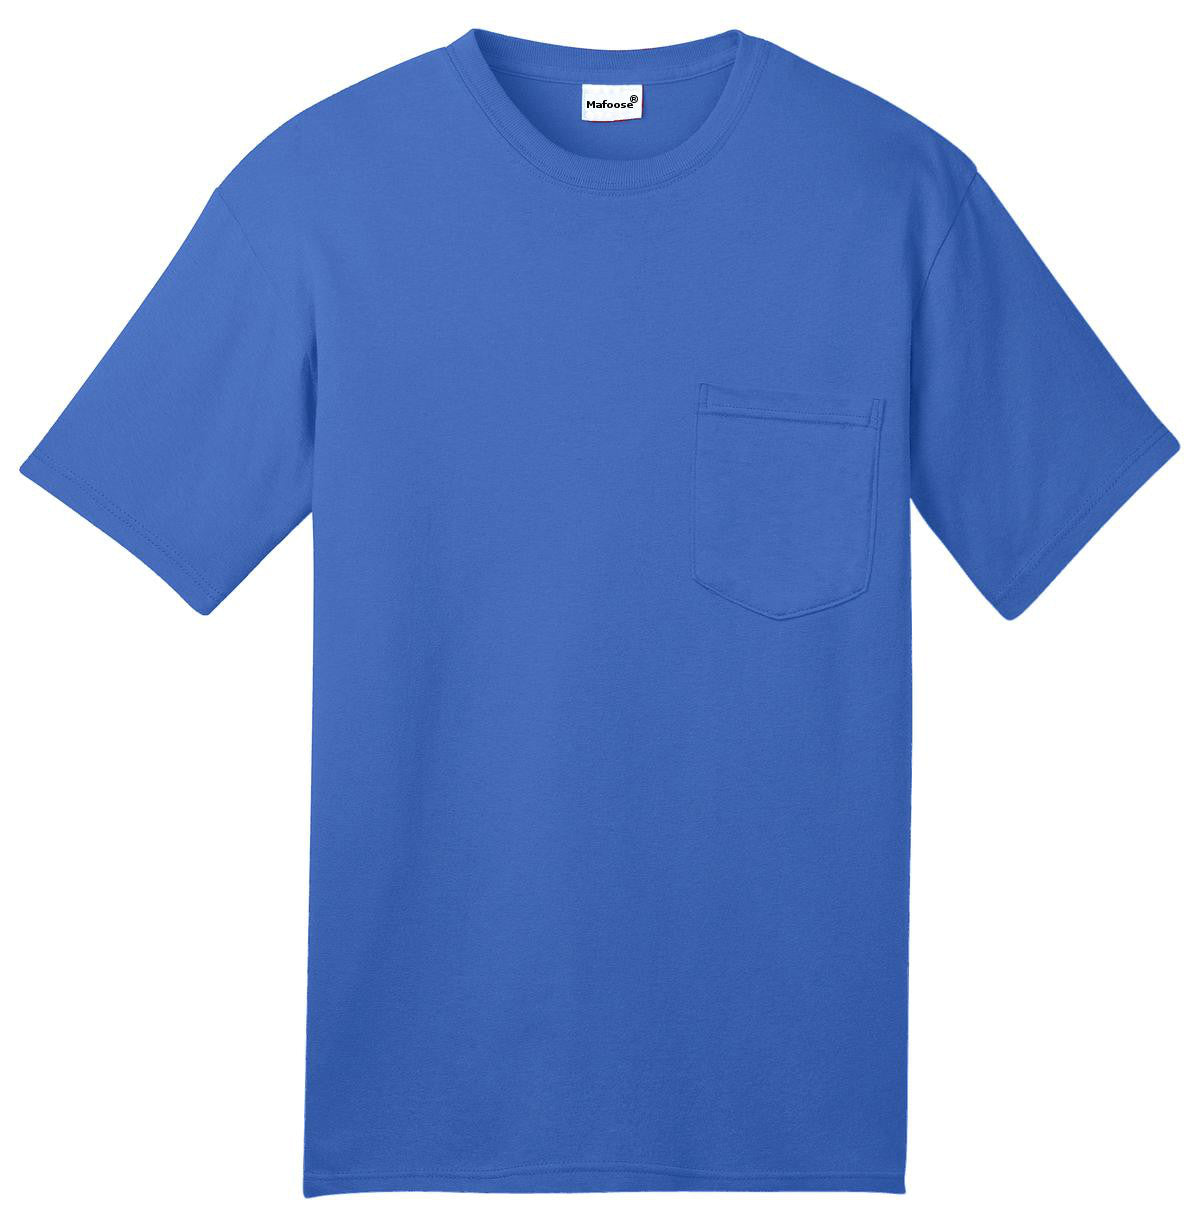 Mafoose Men's All American Tee Shirt with Pocket Royal-Front